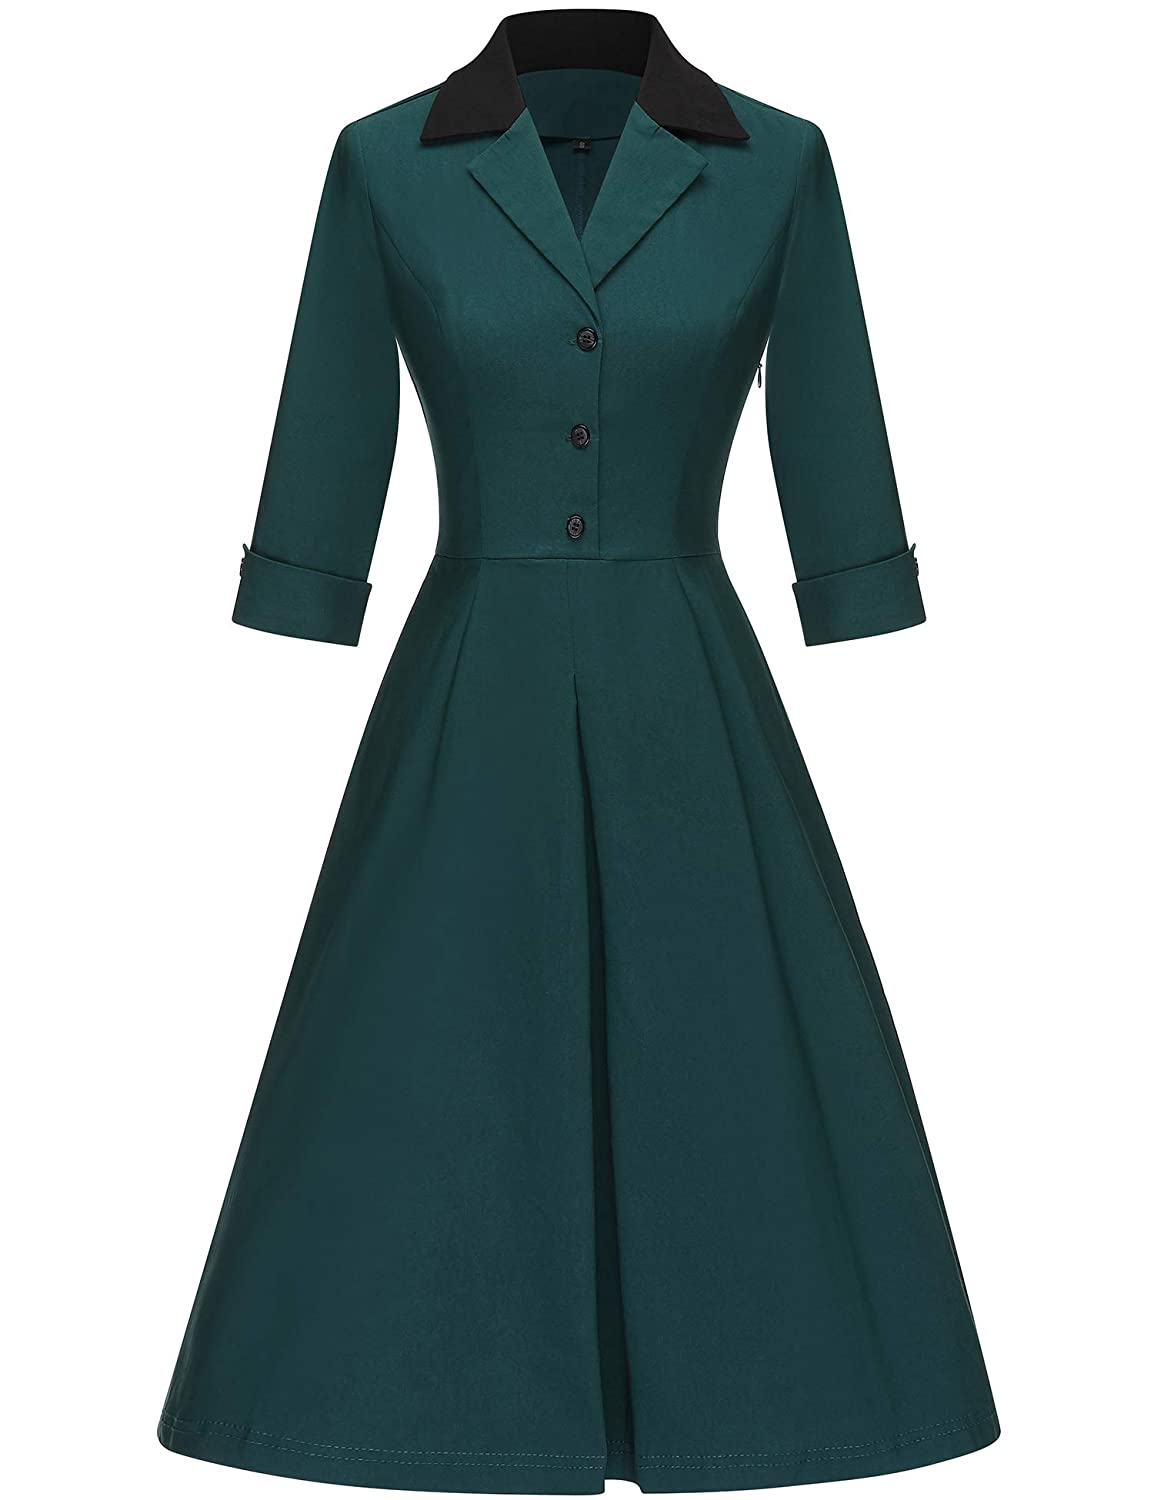 500 Vintage Style Dresses for Sale | Vintage Inspired Dresses GownTown Womens 1950s Vintage 3/4 Sleeves A-Line Dress $36.98 AT vintagedancer.com